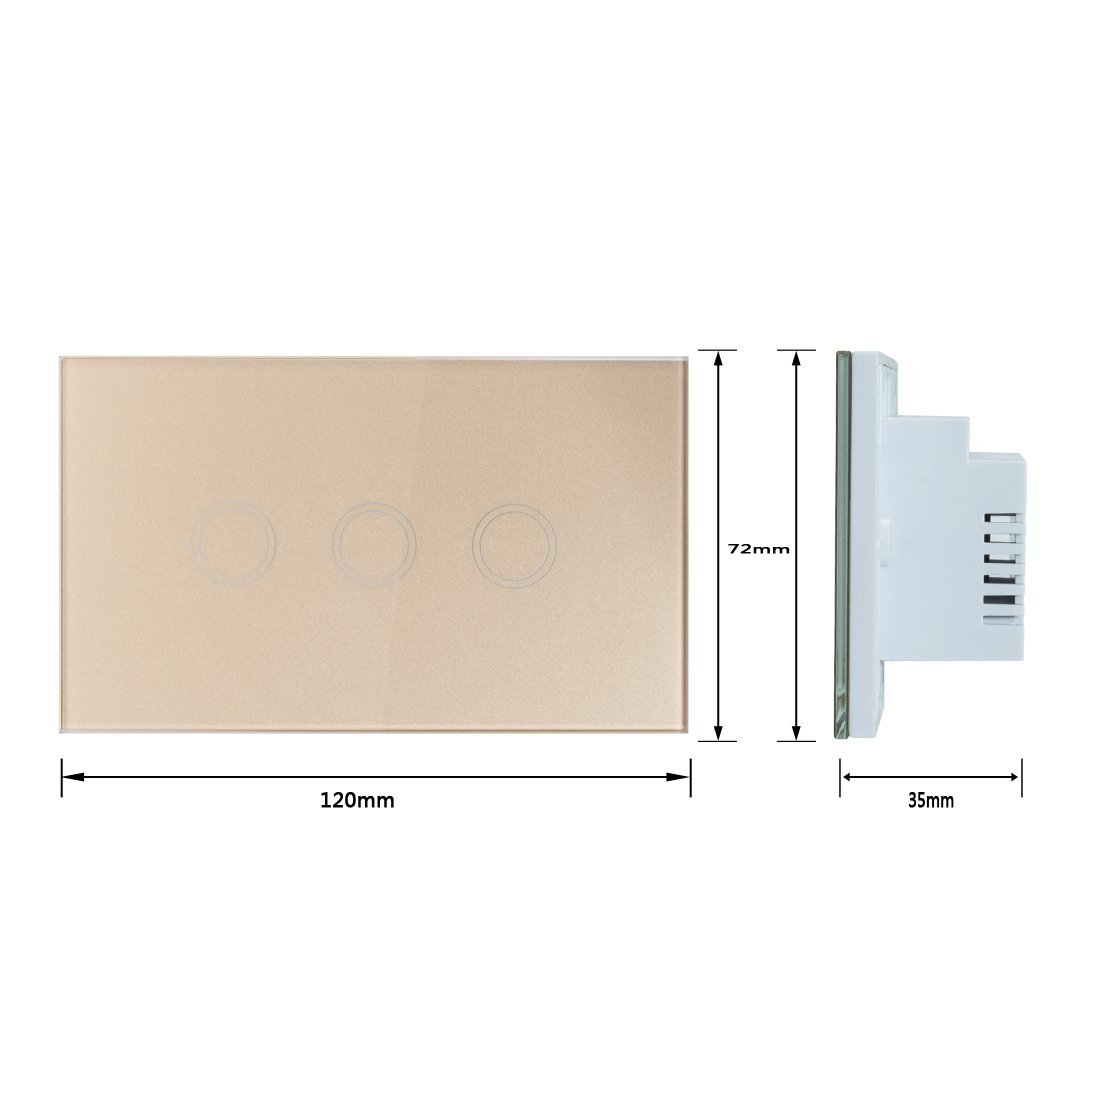 uxcell Touch Wall Light Switch, Luxury Crystal Glass Panel, AC 110-240V 1 Way 3 Gang Smart Touch Switch Gold US by uxcell (Image #4)